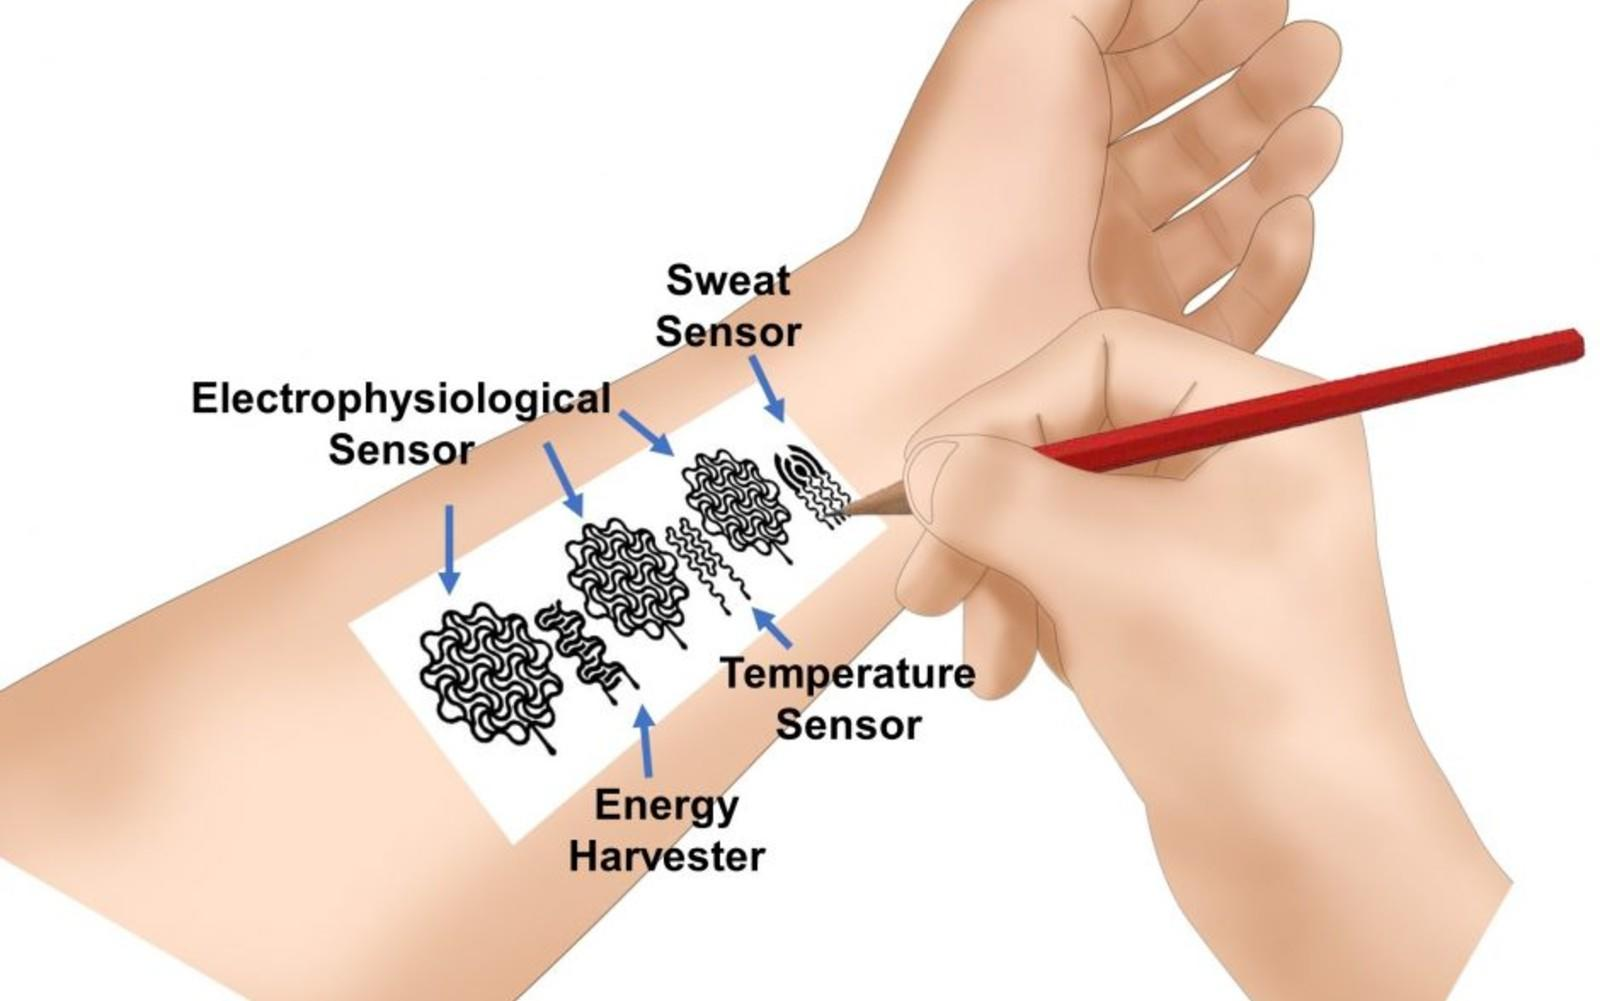 Researchers made a medical wearable using a pencil and paper – Yahoo Finance Australia